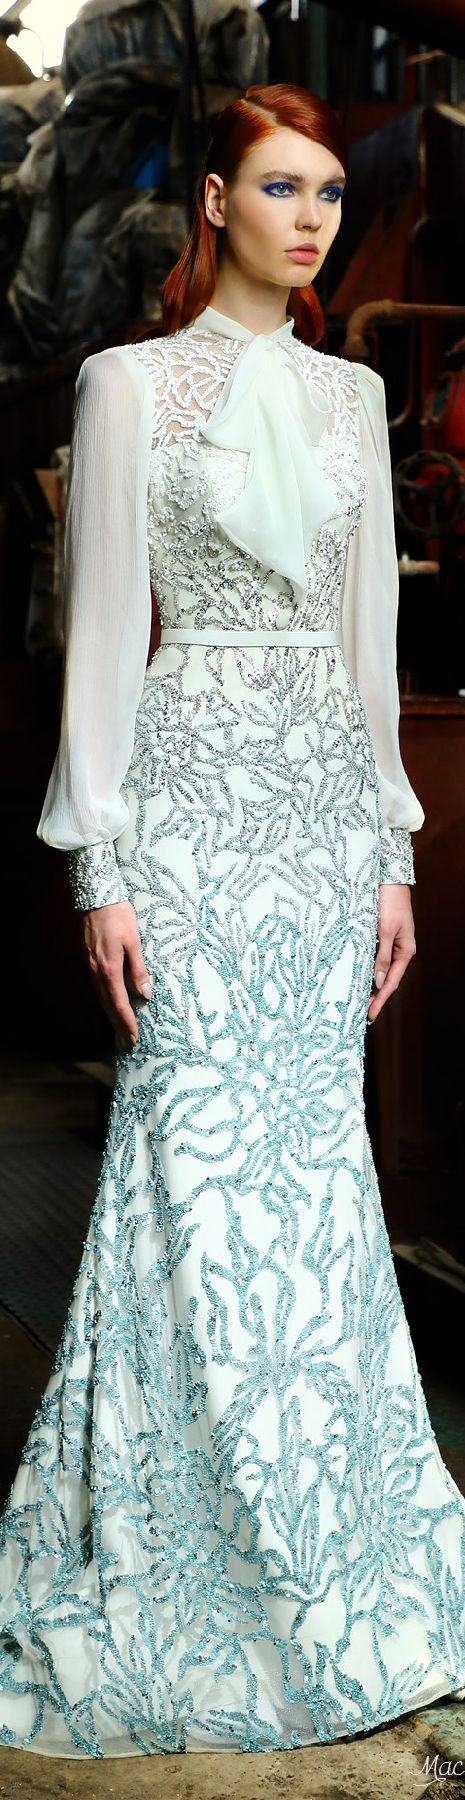 285 best rami kadi images on Pinterest | Couture details, Feminine ...